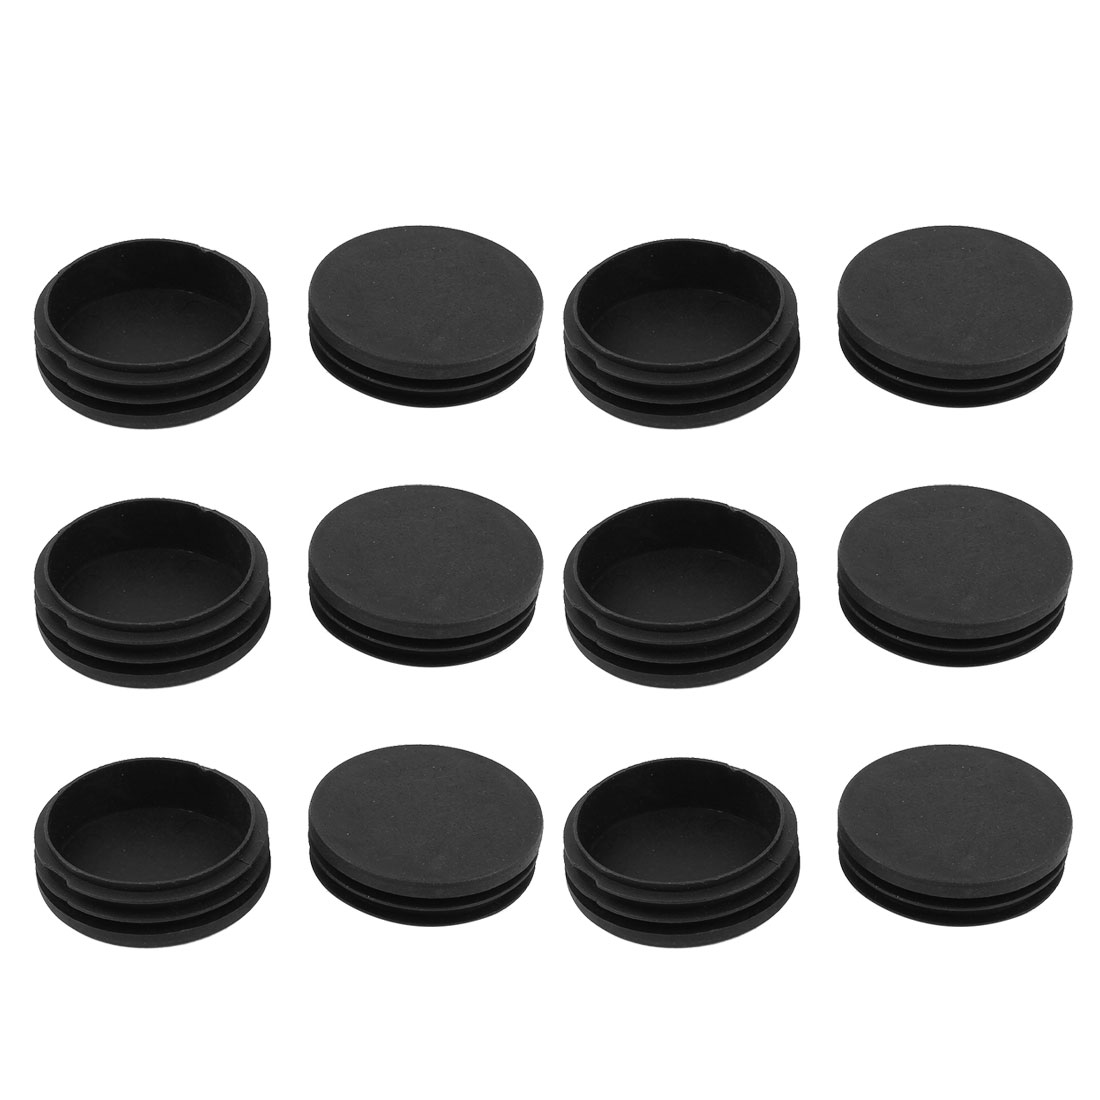 12 Pcs Black Plastic 58mm Dia Round Tubing Tube Insert Caps Covers